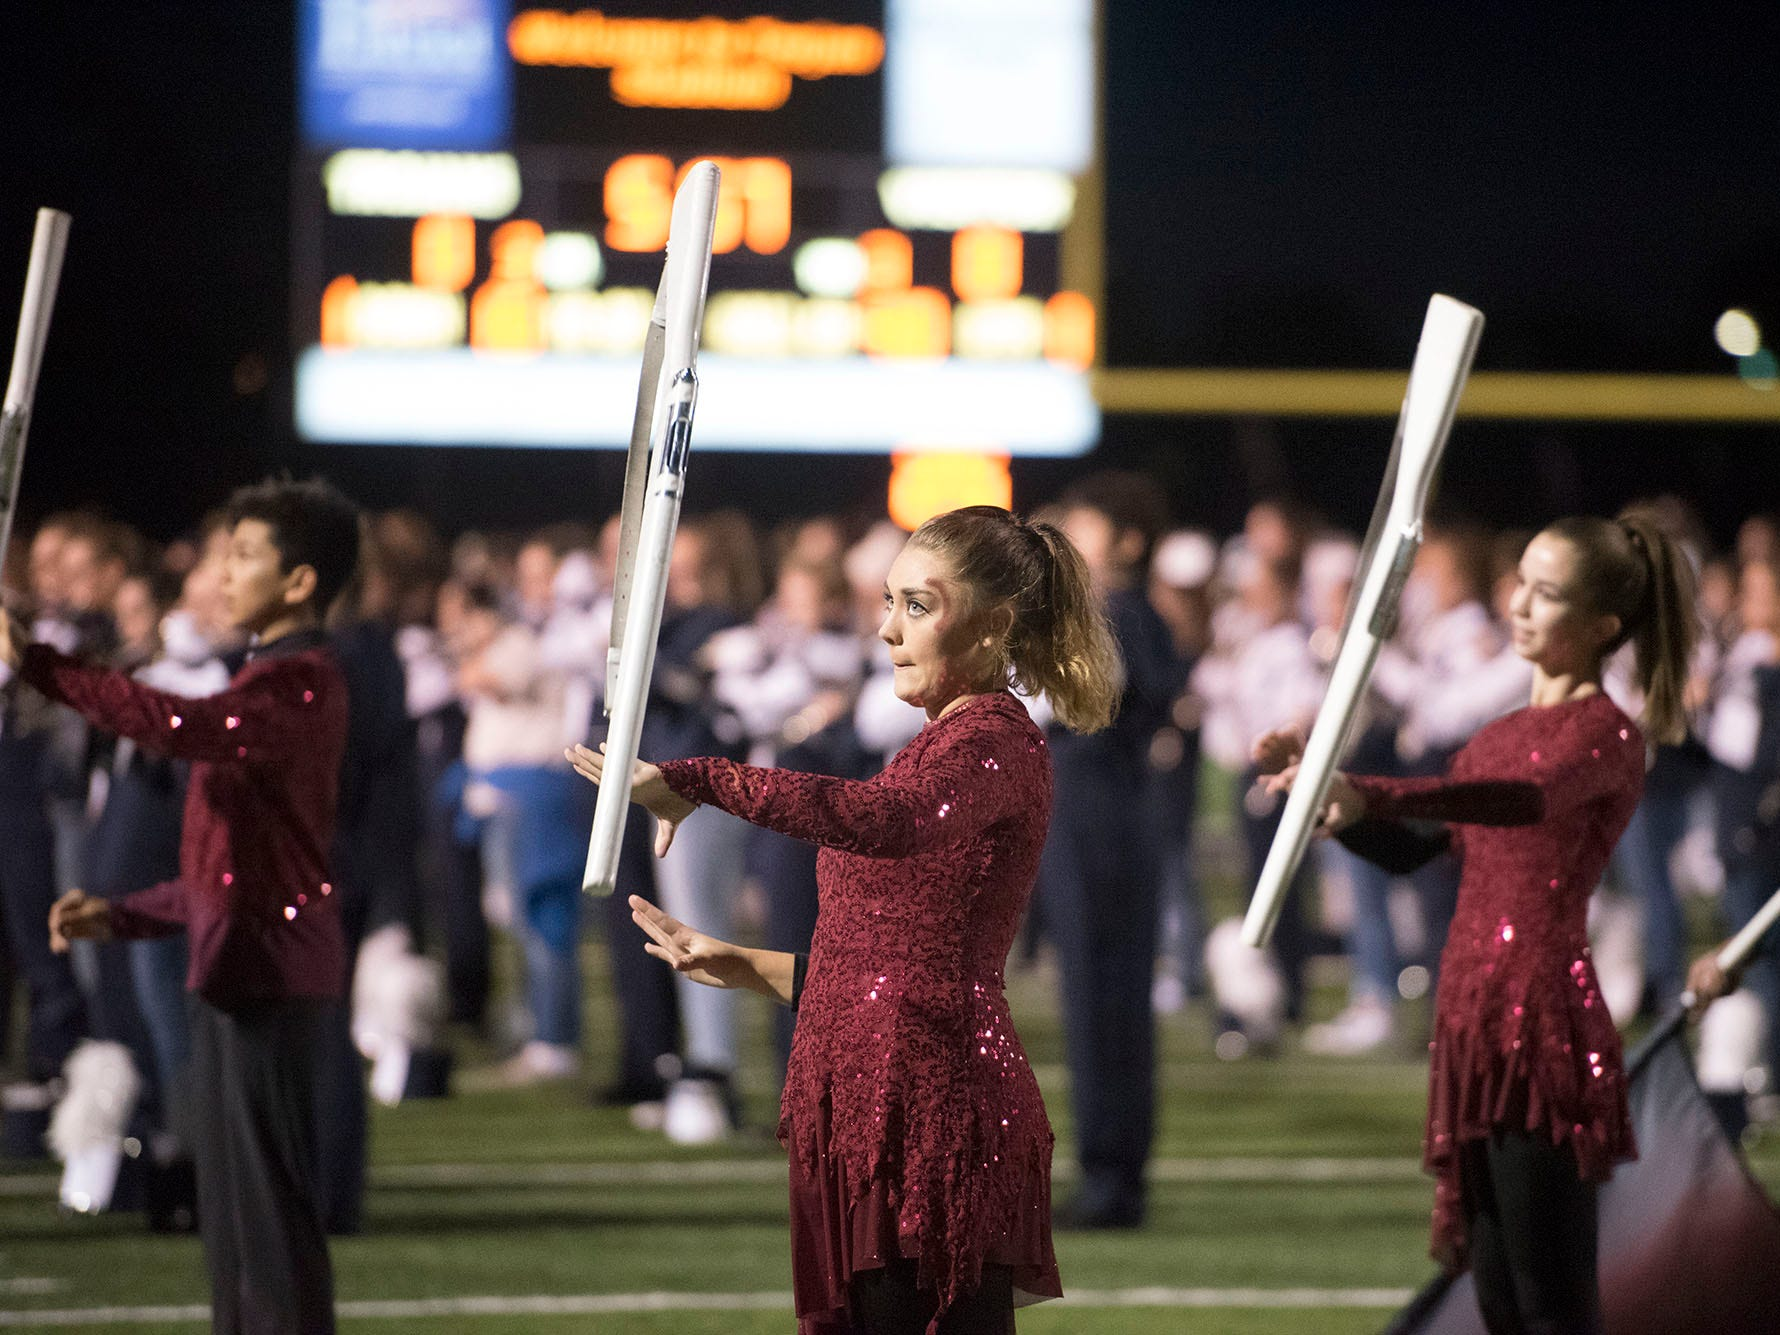 Trojan Marching Band members perform. Chambersburg lost to Central Dauphin 35-14 in PIAA football on Friday, Oct. 19, 2018.